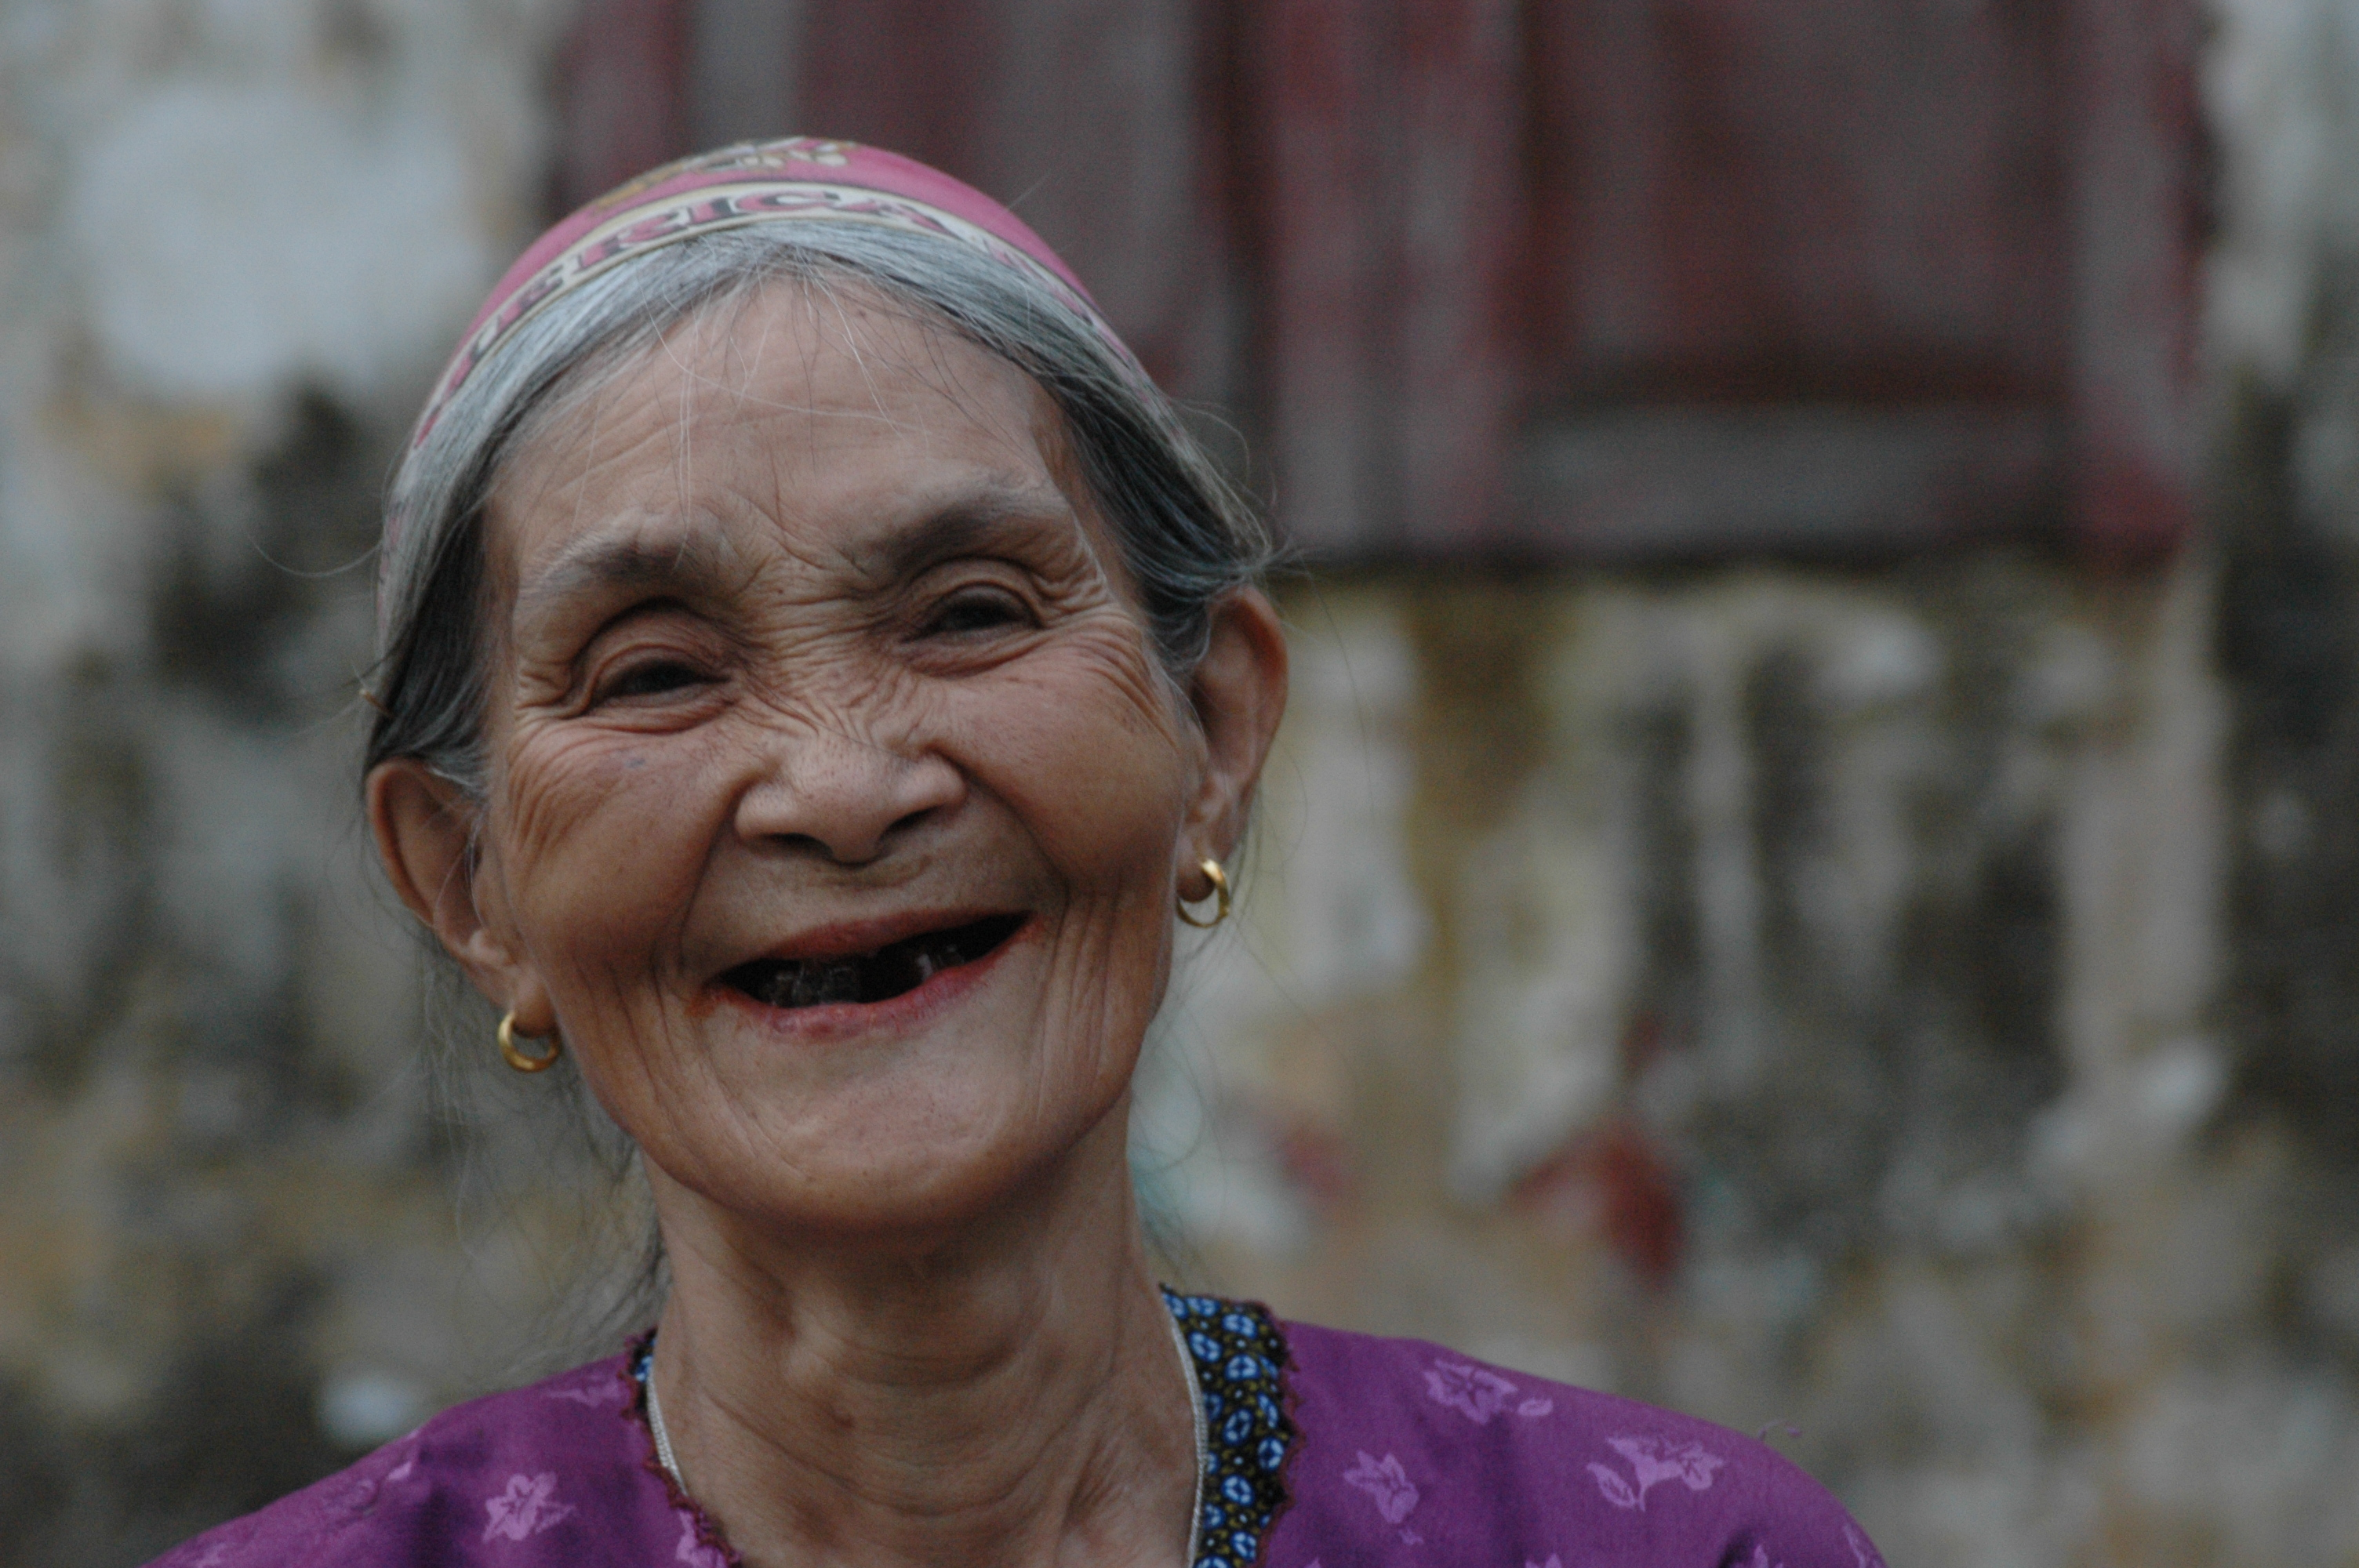 An older woman smiles widely in Myanmar.